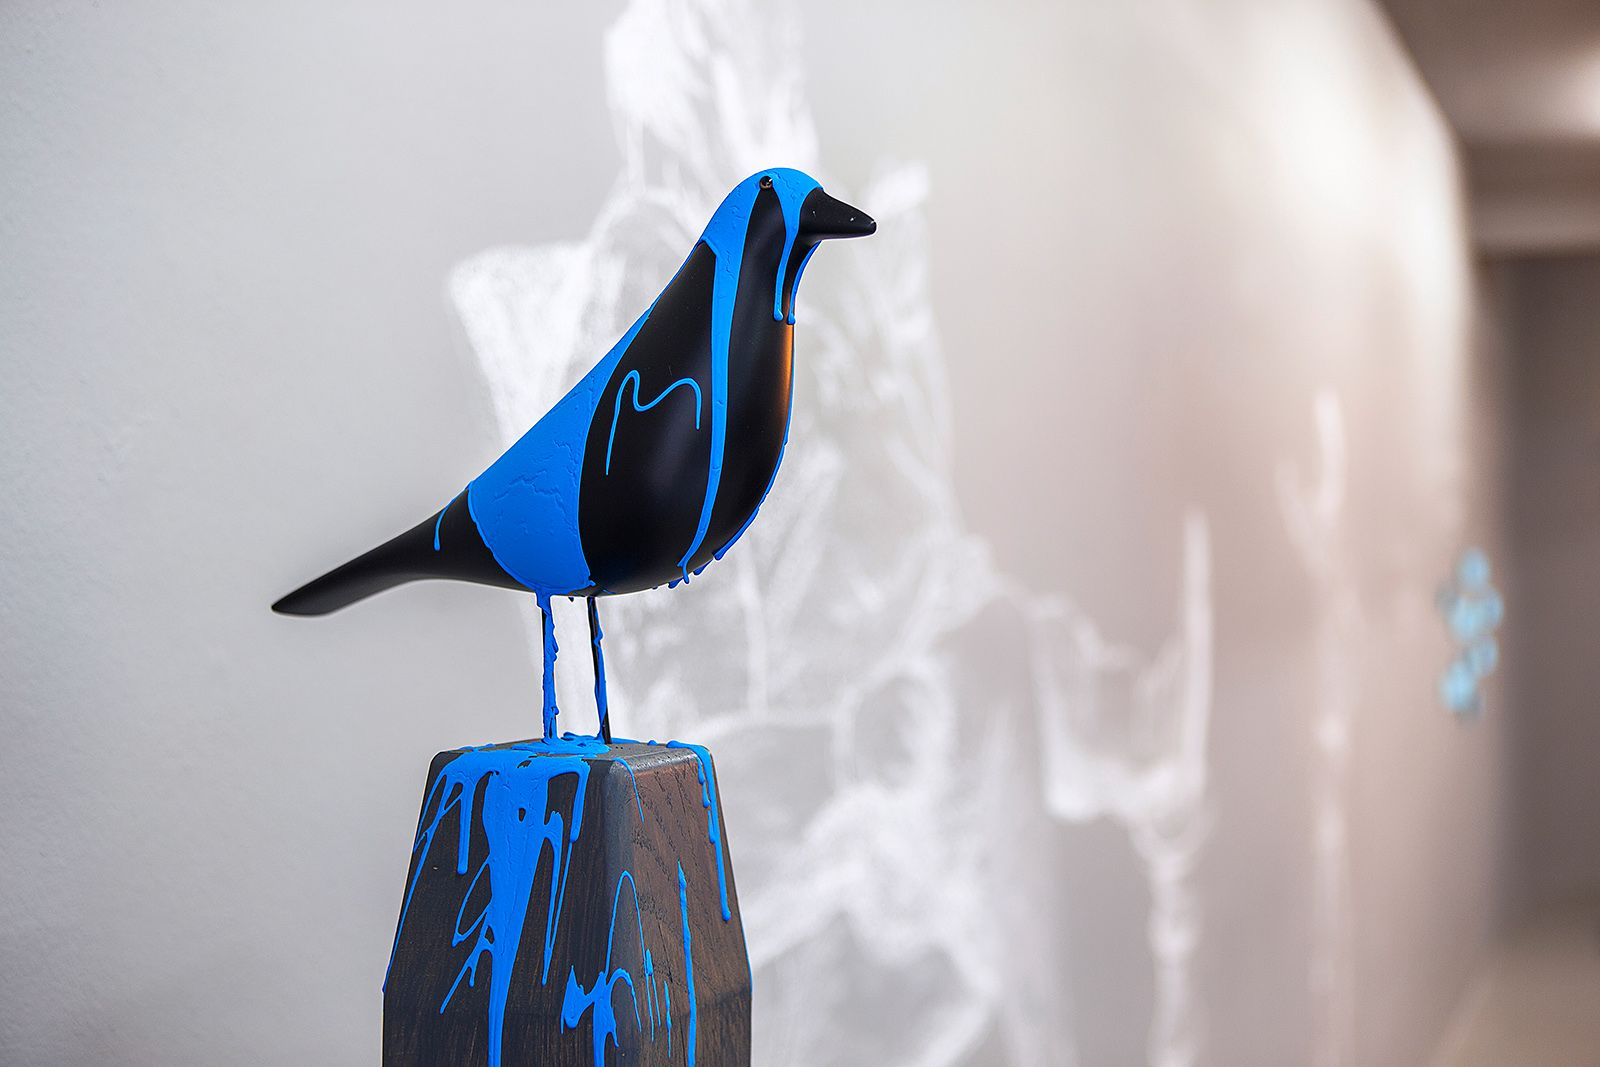 Punct Object gestaltung blue room vitra eames house bird punct object de